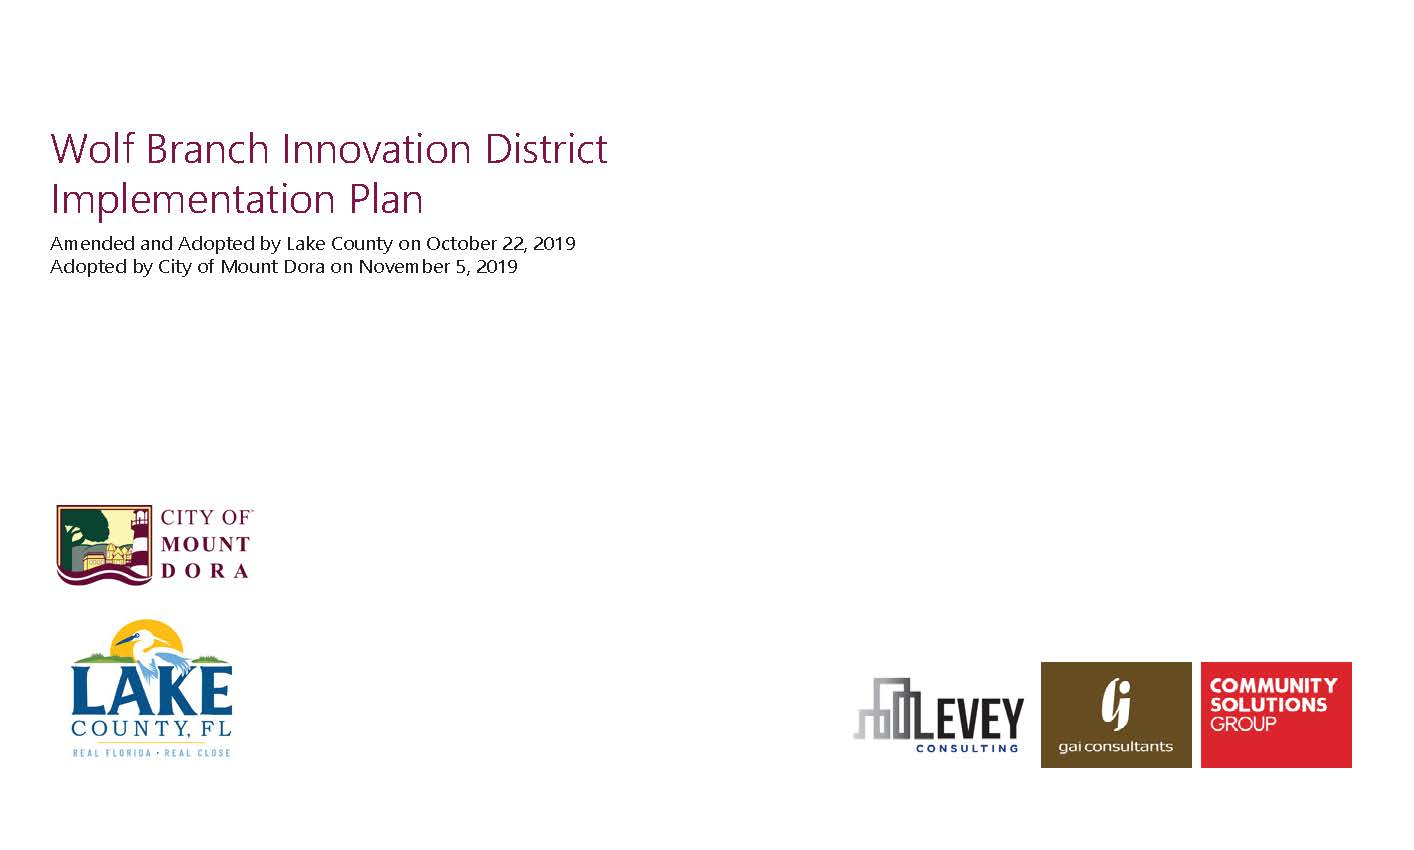 Wolf Branch Innovation District Implementation Plan